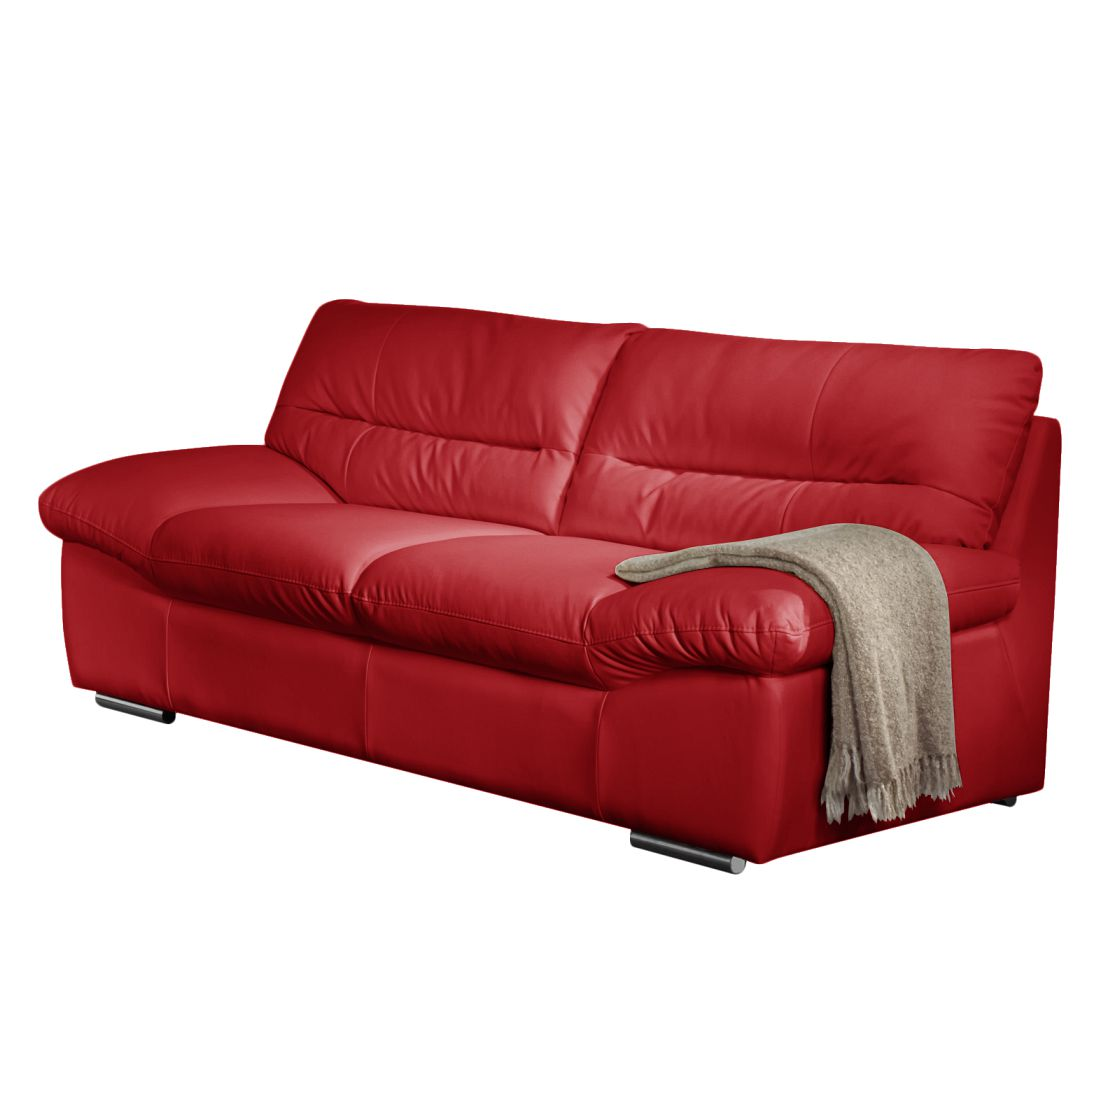 sofa doug 2 sitzer echtleder rot cotta g nstig bestellen. Black Bedroom Furniture Sets. Home Design Ideas